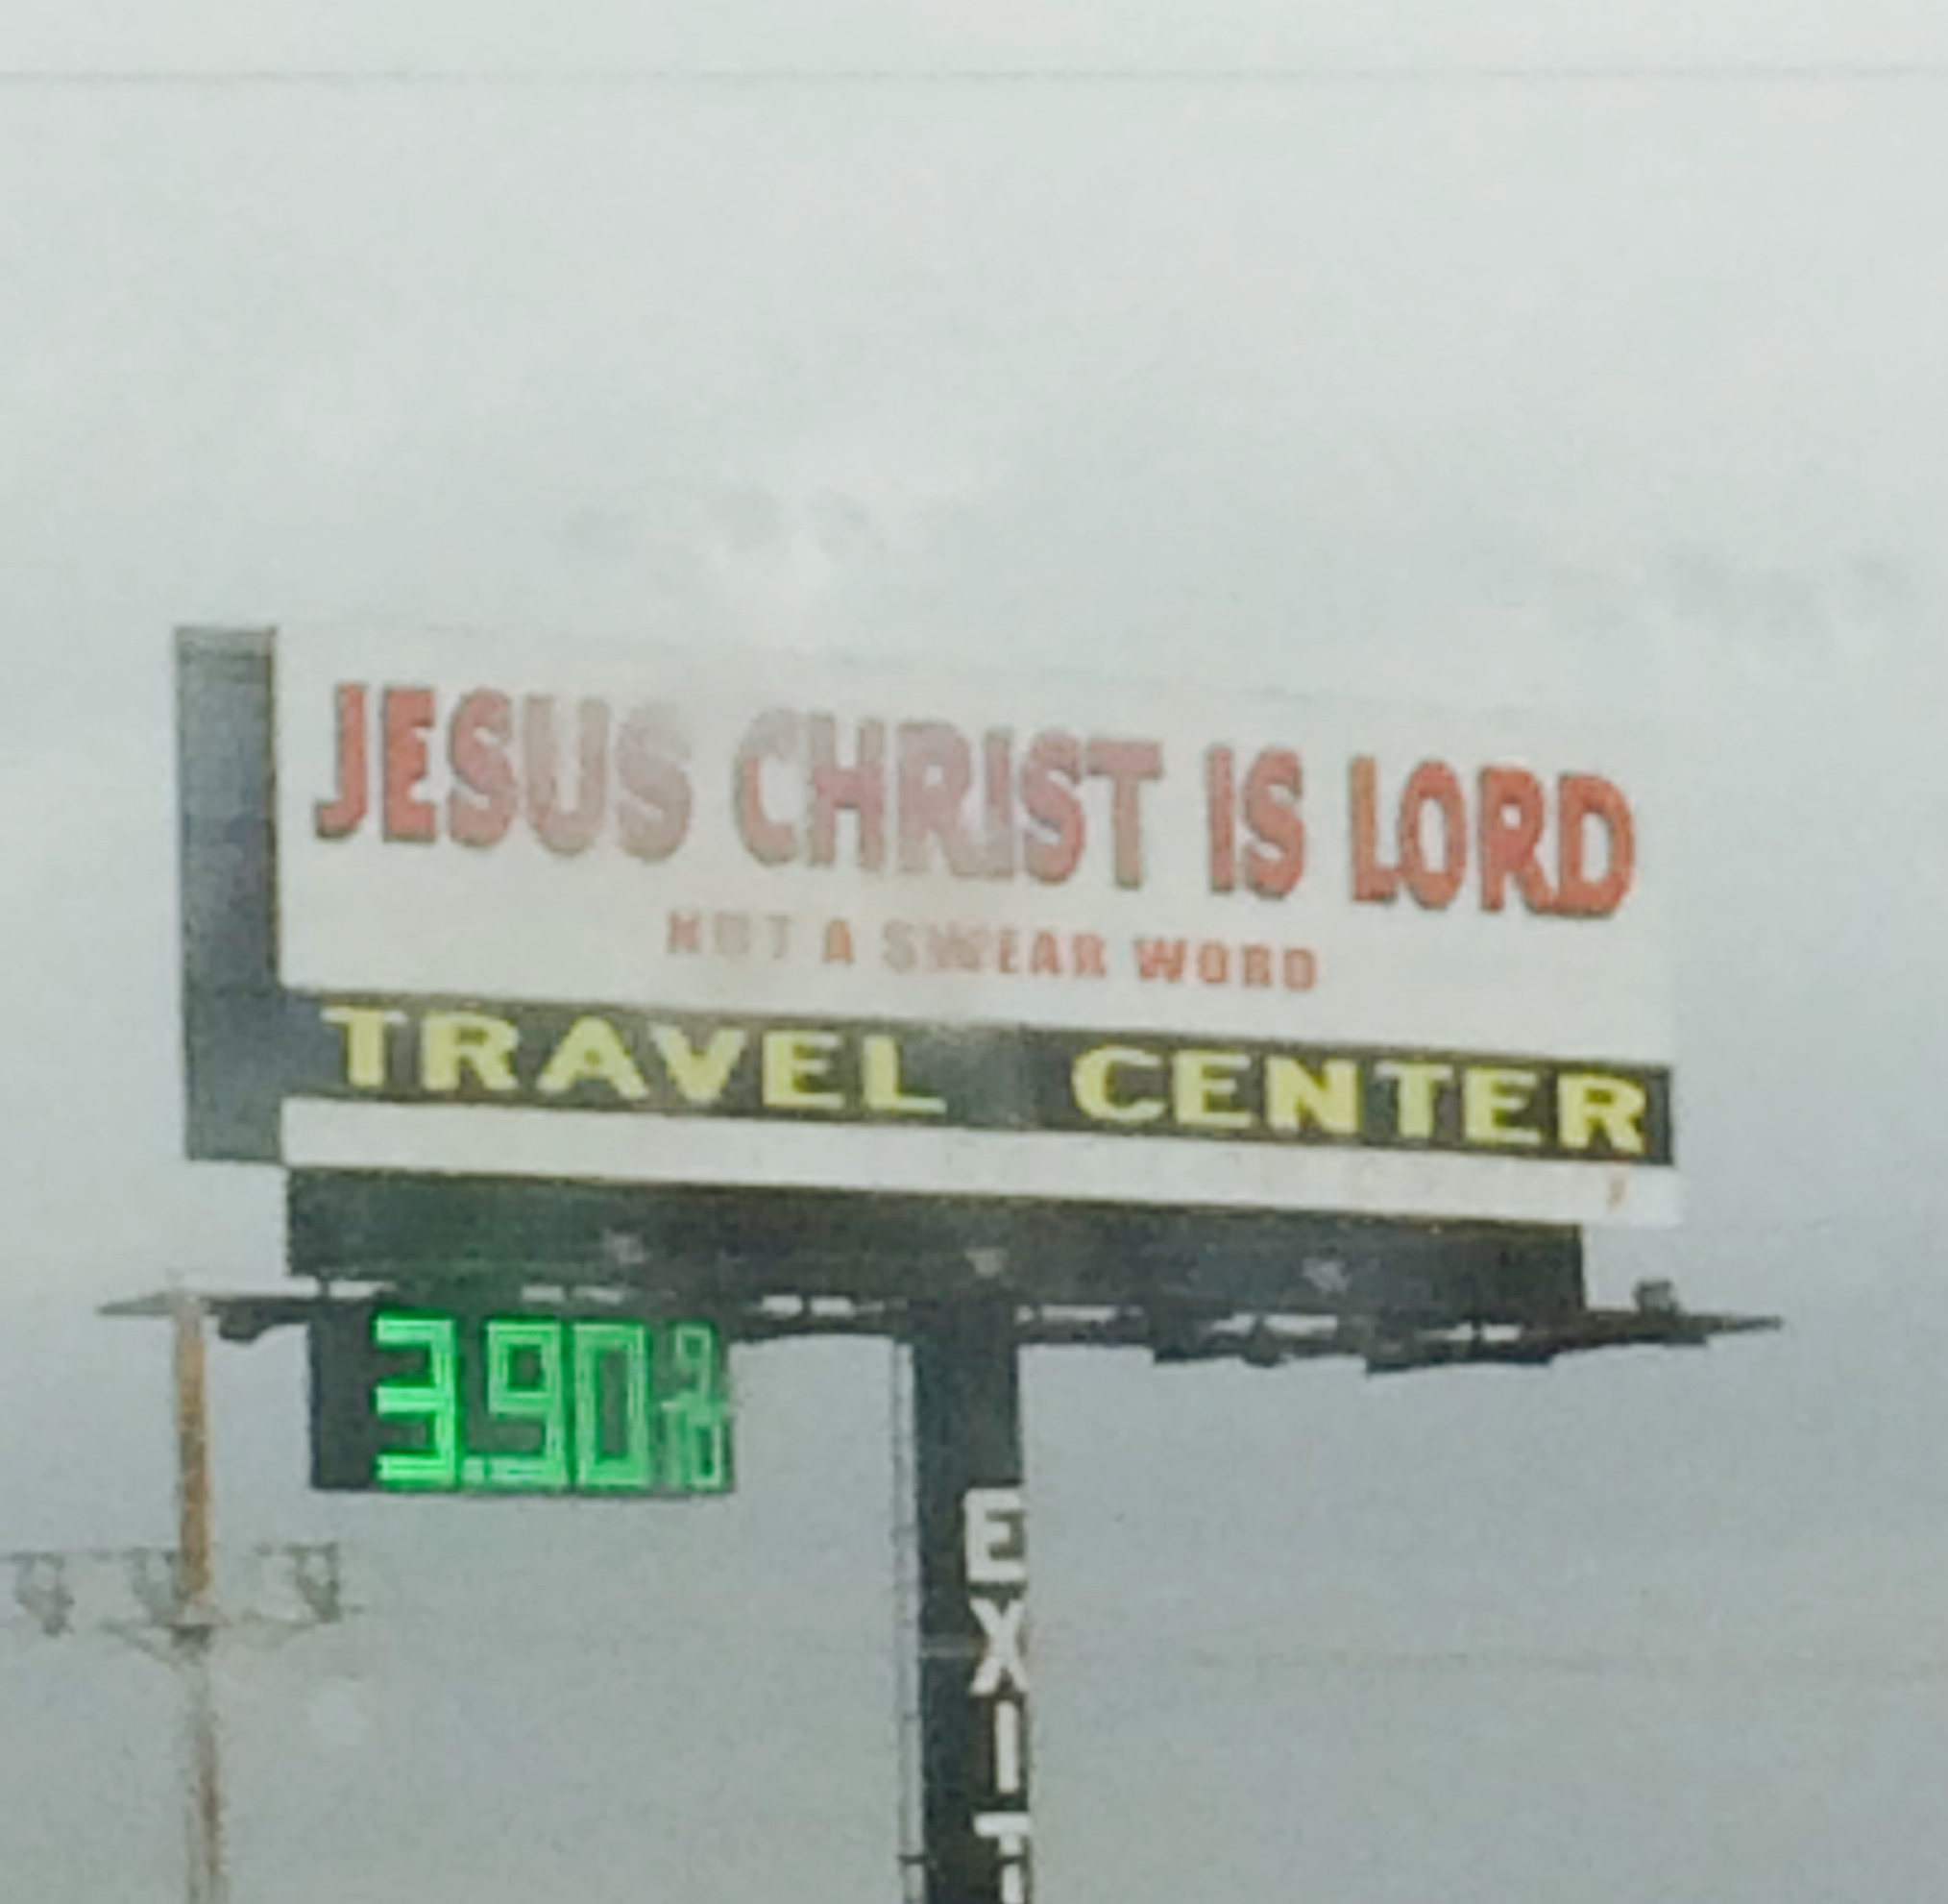 Travel Center on Interstate 40.